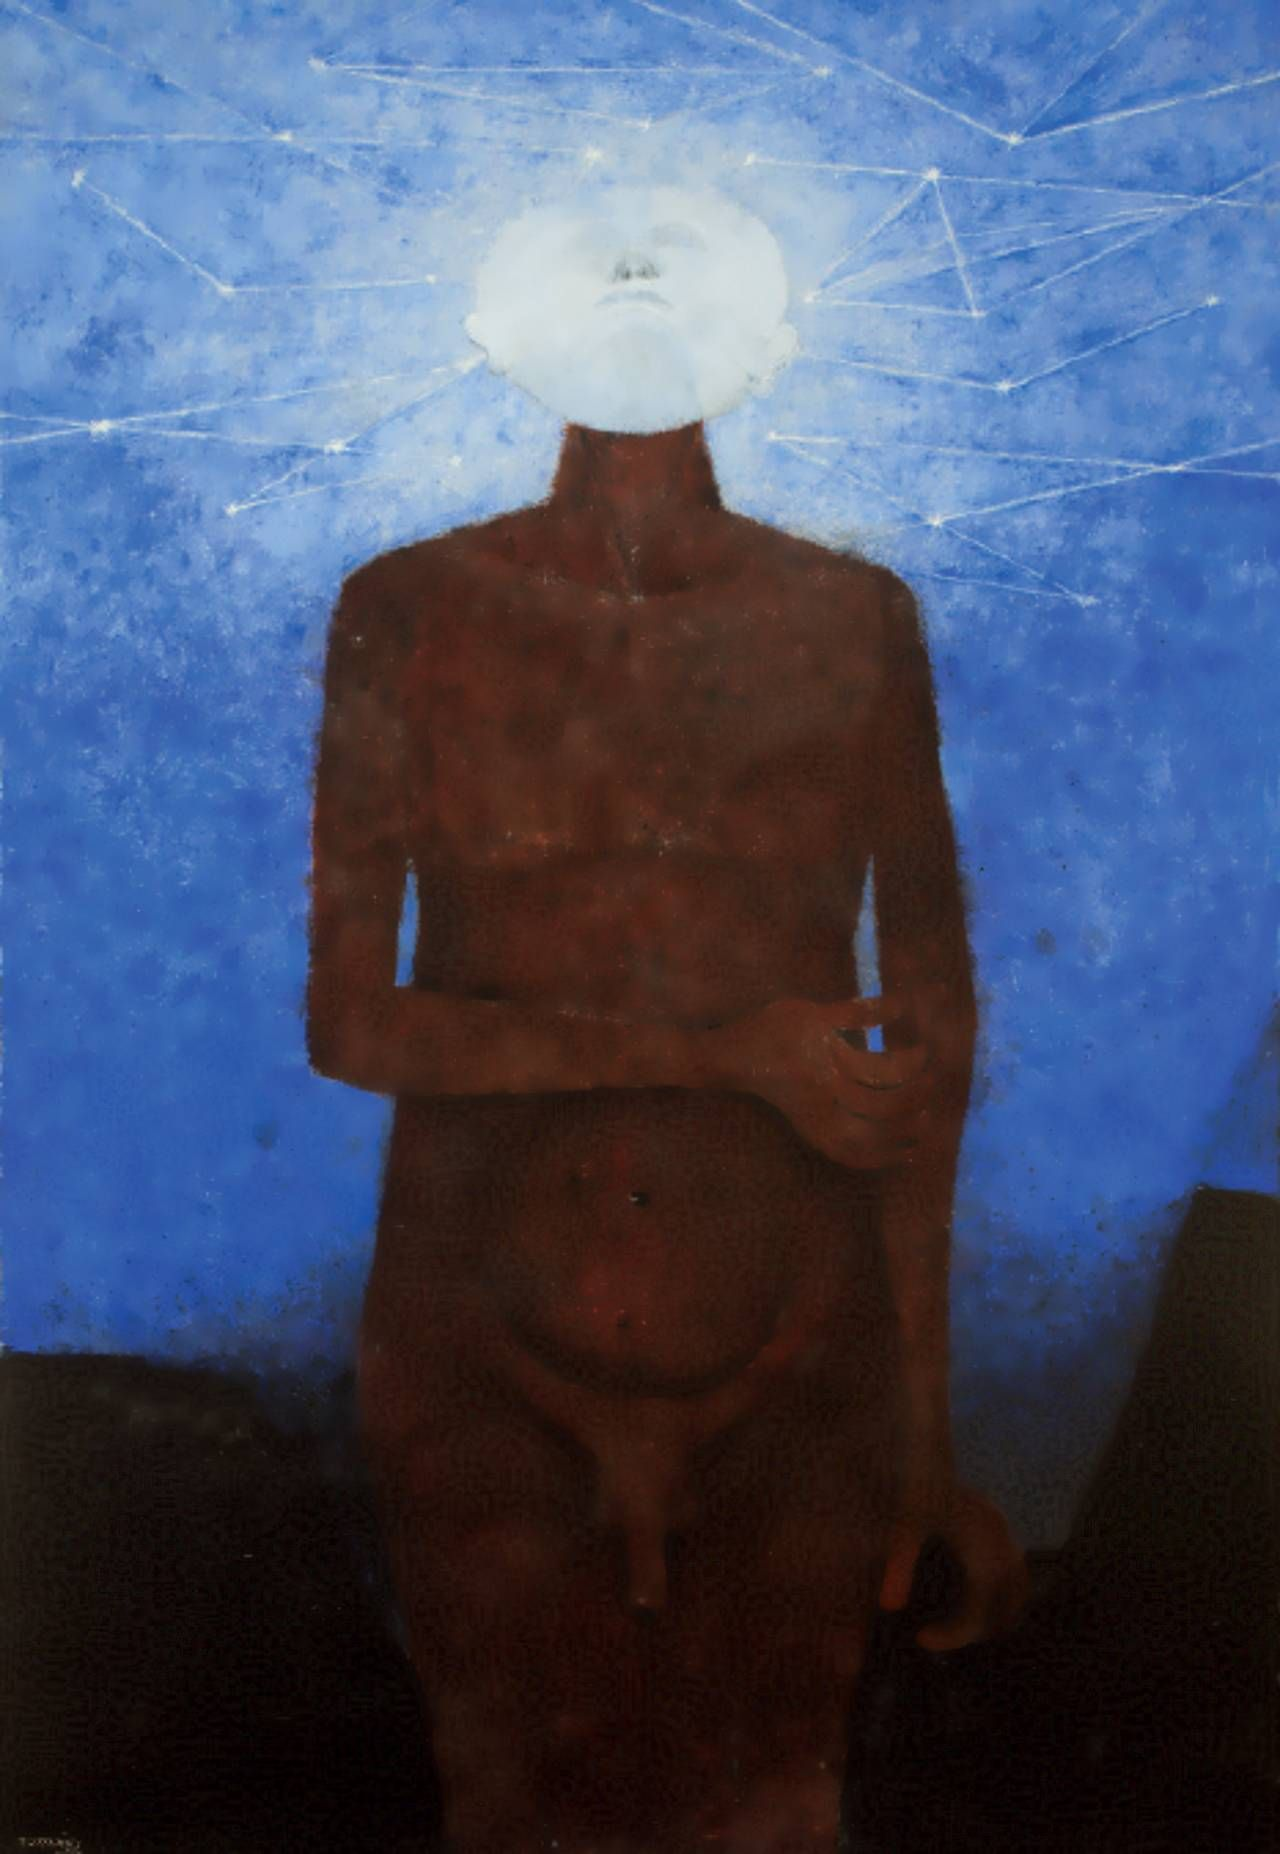 Rufino Tamayo - El Iluminado 1976 | THE ANATOMY OF MELANCHOLY ...